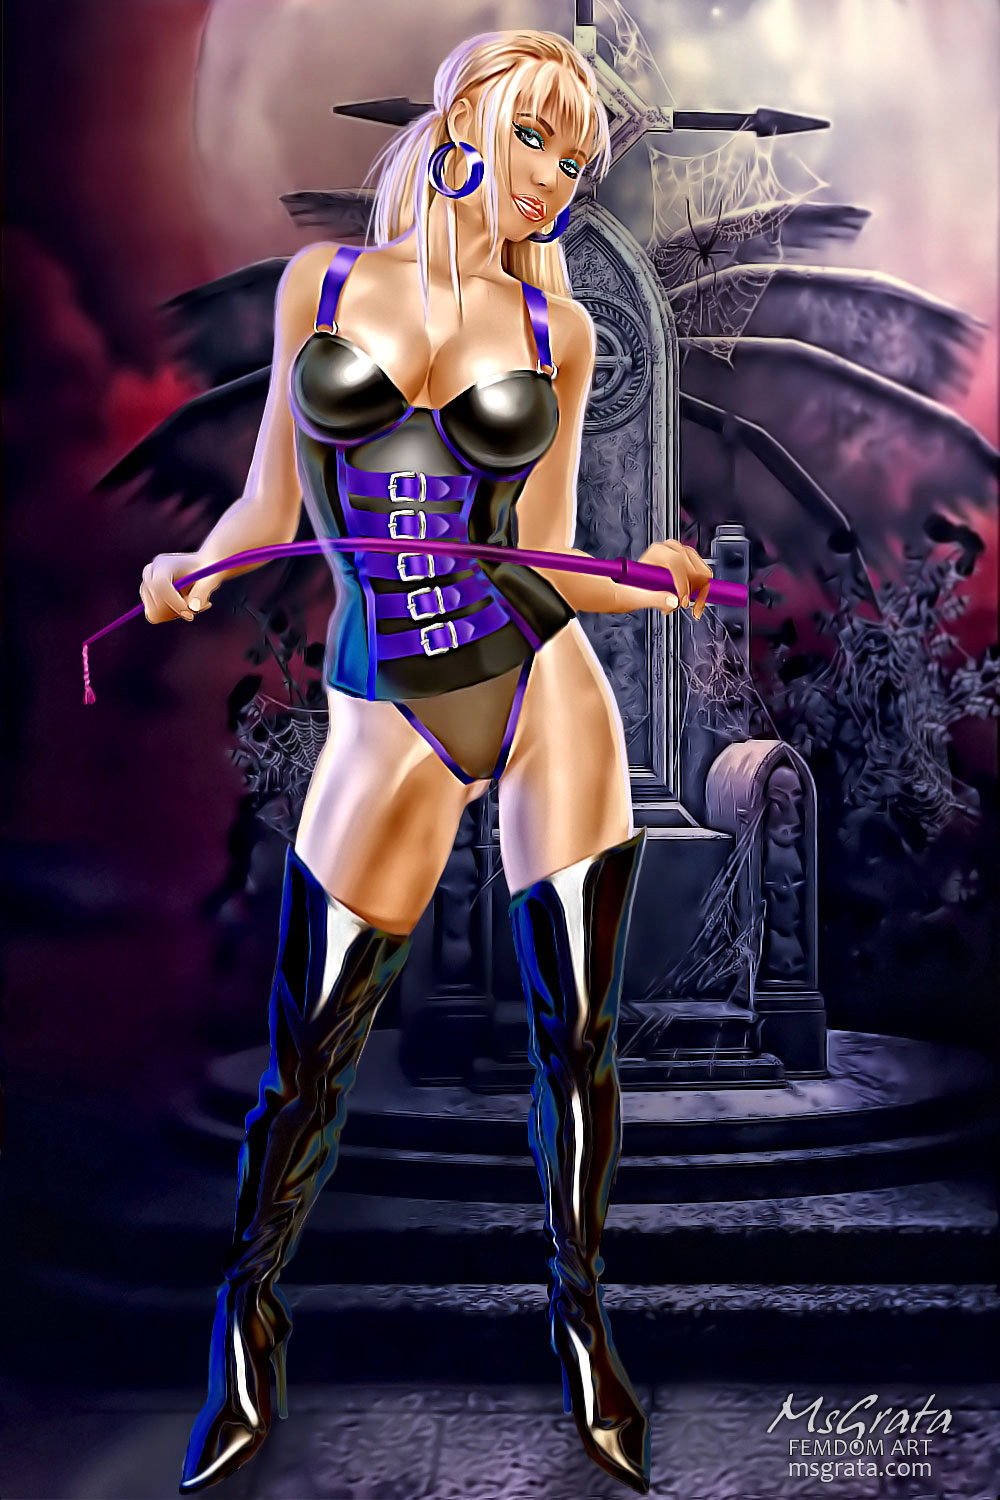 Latex blonde Mistress with whip in dungeon drawn femdom art by MsGrata